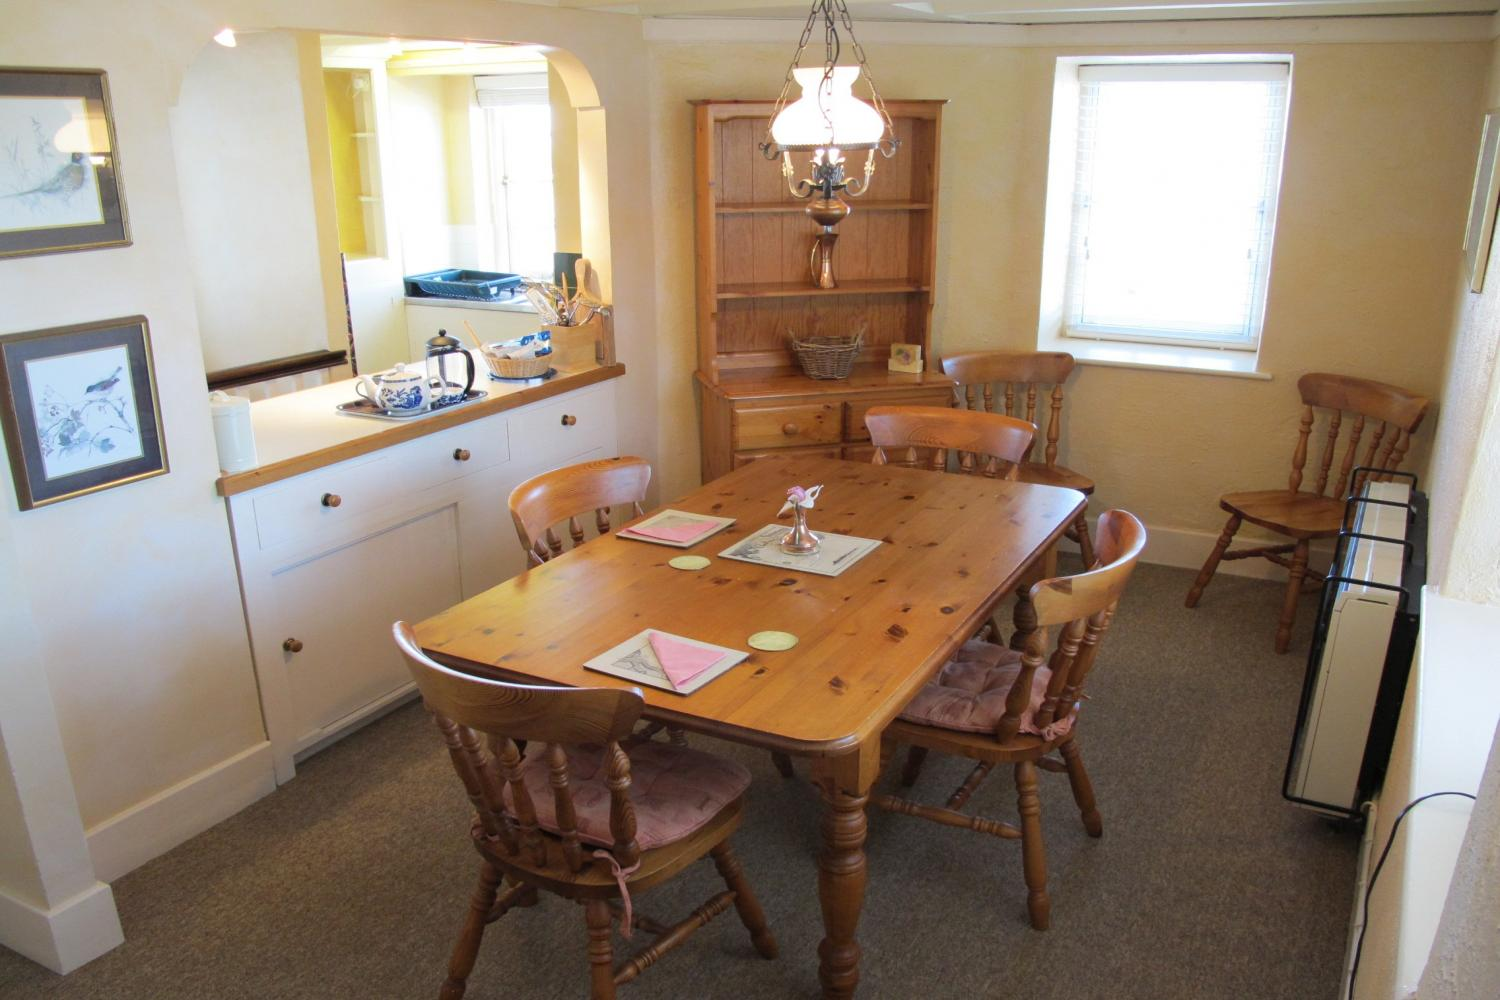 Harbour House Apartment Porlock Weir5